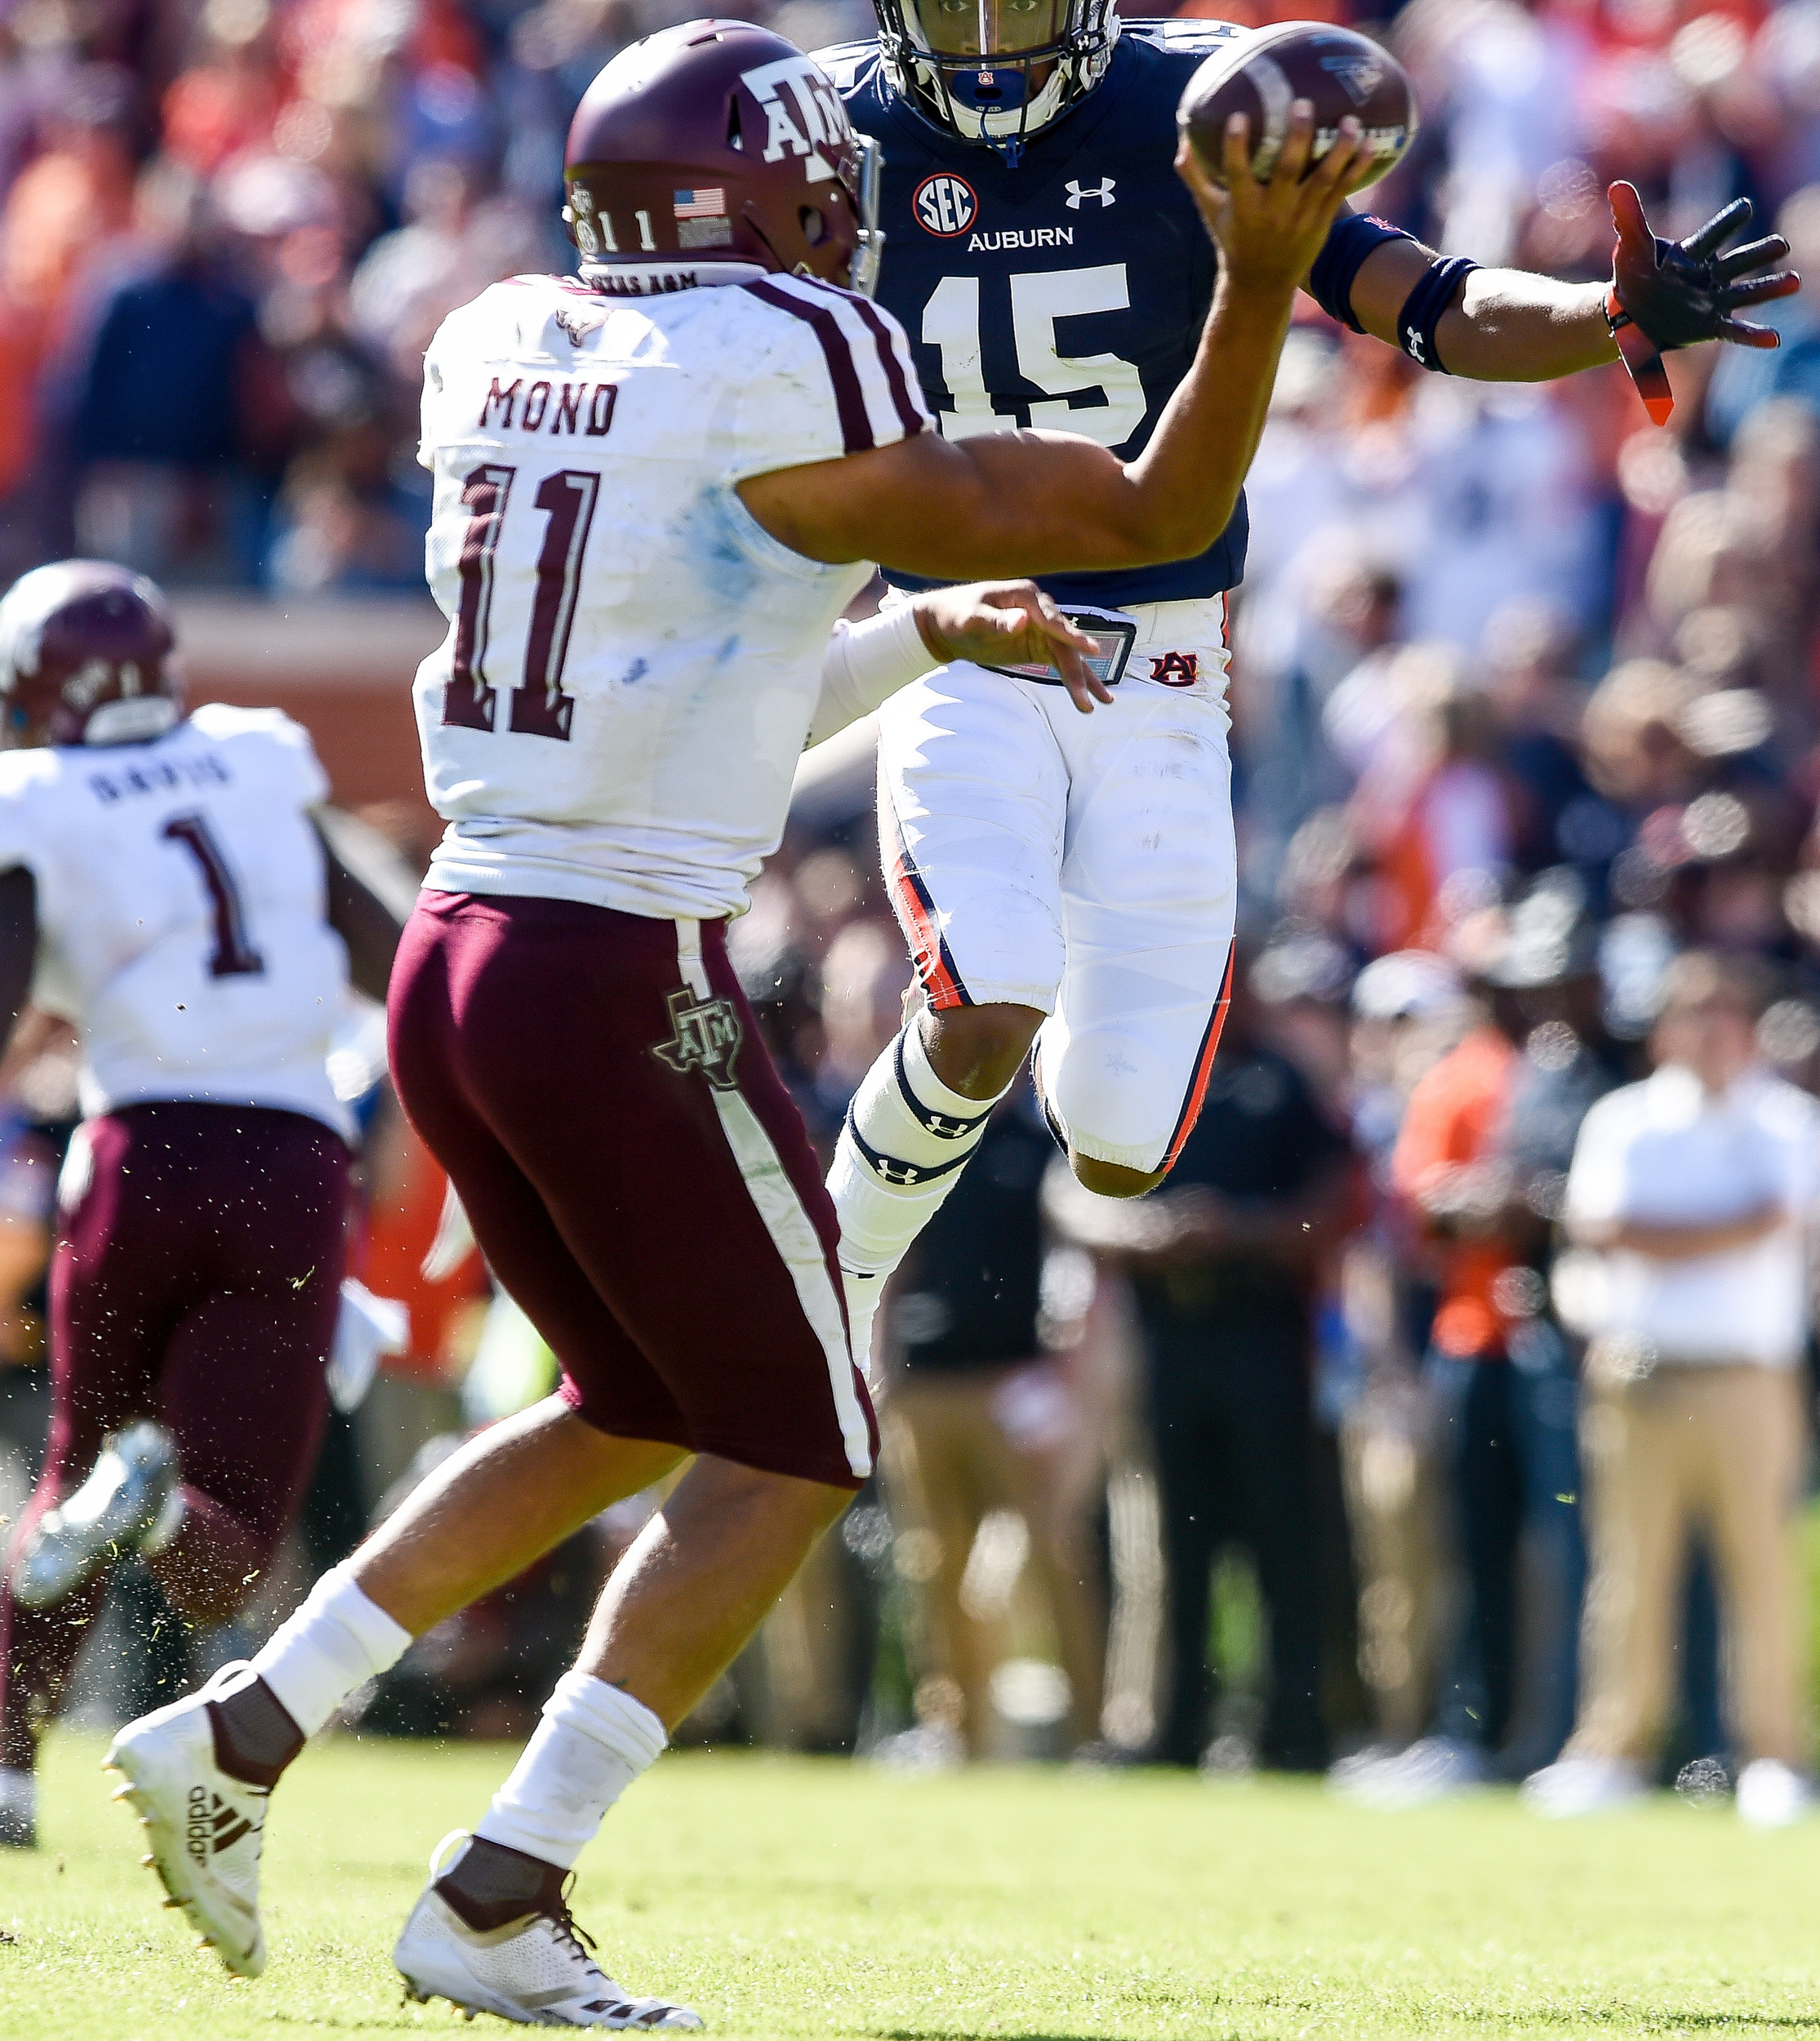 Texas A&M Aggies quarterback Kellen Mond (11) is pressured by Auburn Tigers defensive back Jordyn Peters (15) during the second half of an NCAA football game against the Texas A&M Aggies Saturday, November 3, 2018, at Jordan-Hare Stadium in Auburn, Ala. (Photo by Jeff Johnsey)